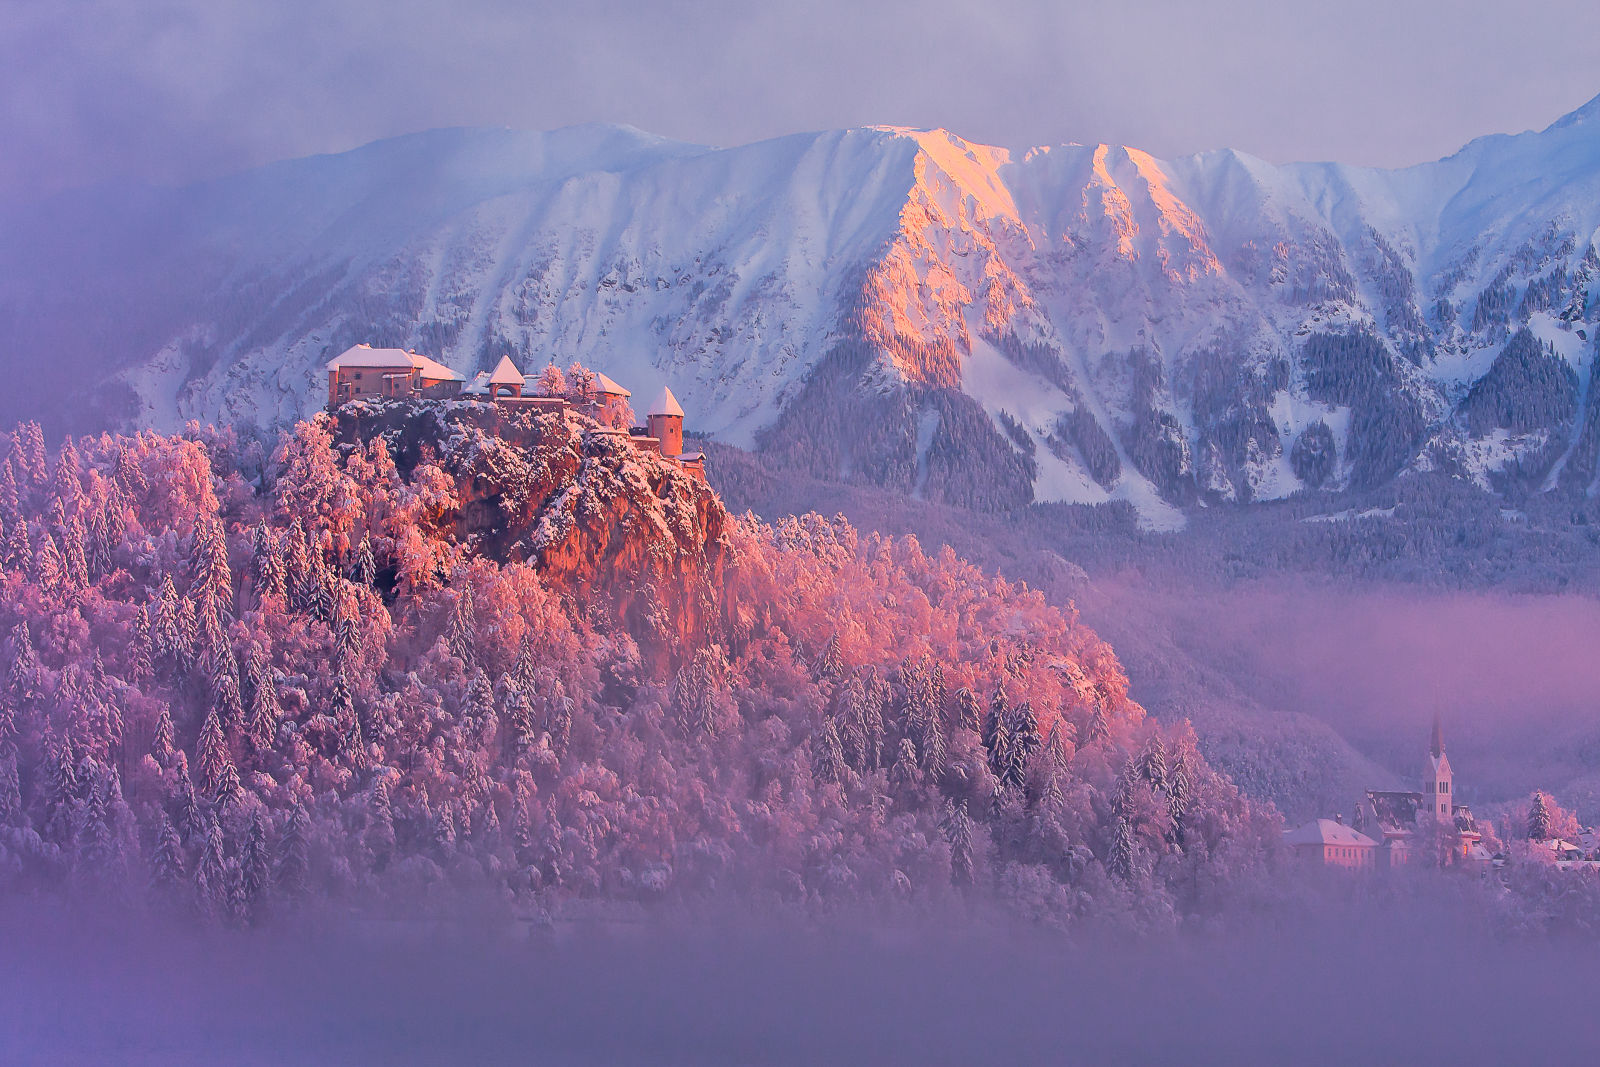 Bled Castle in winter with a covering of fresh snow